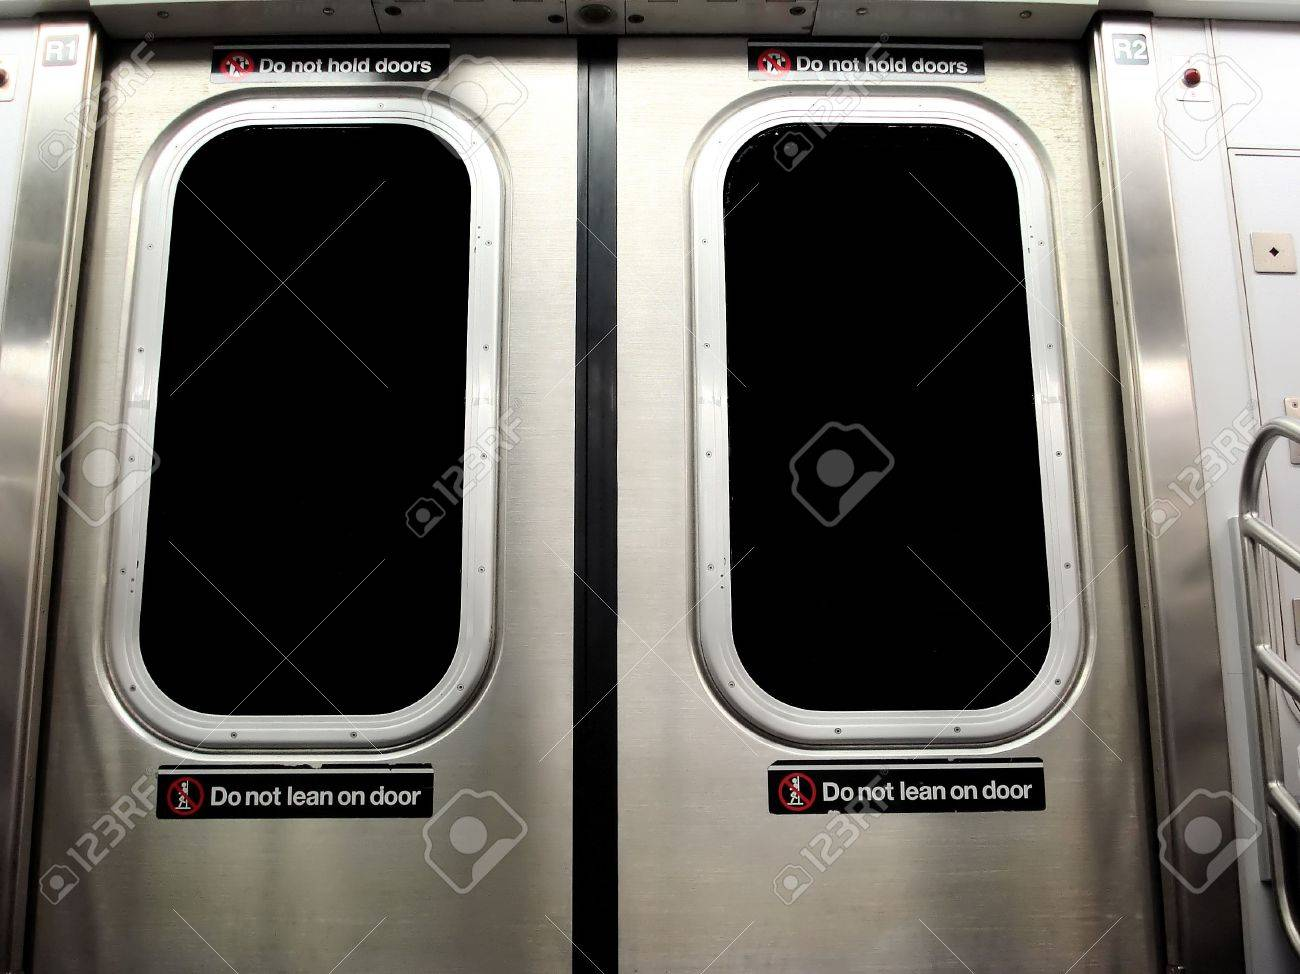 New York City Subway Train with Do Not Lean on Door Warning Sign Stock Photo - & New York City Subway Train With Do Not Lean On Door Warning Sign ...